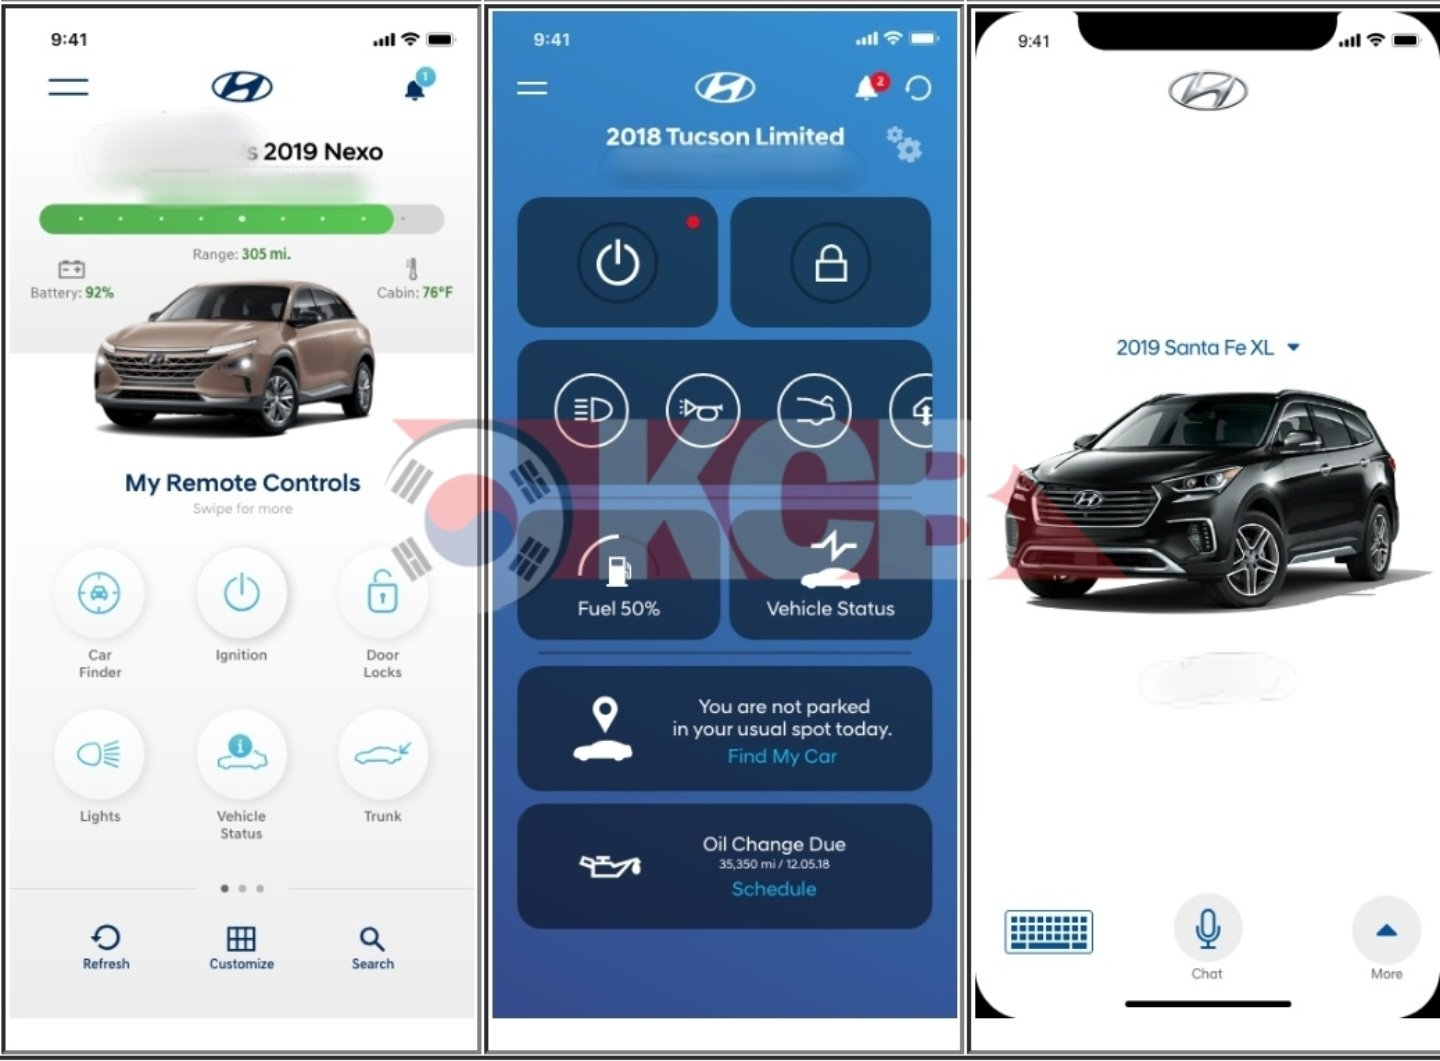 MyHyundai BlueLink App Preparing for an Update